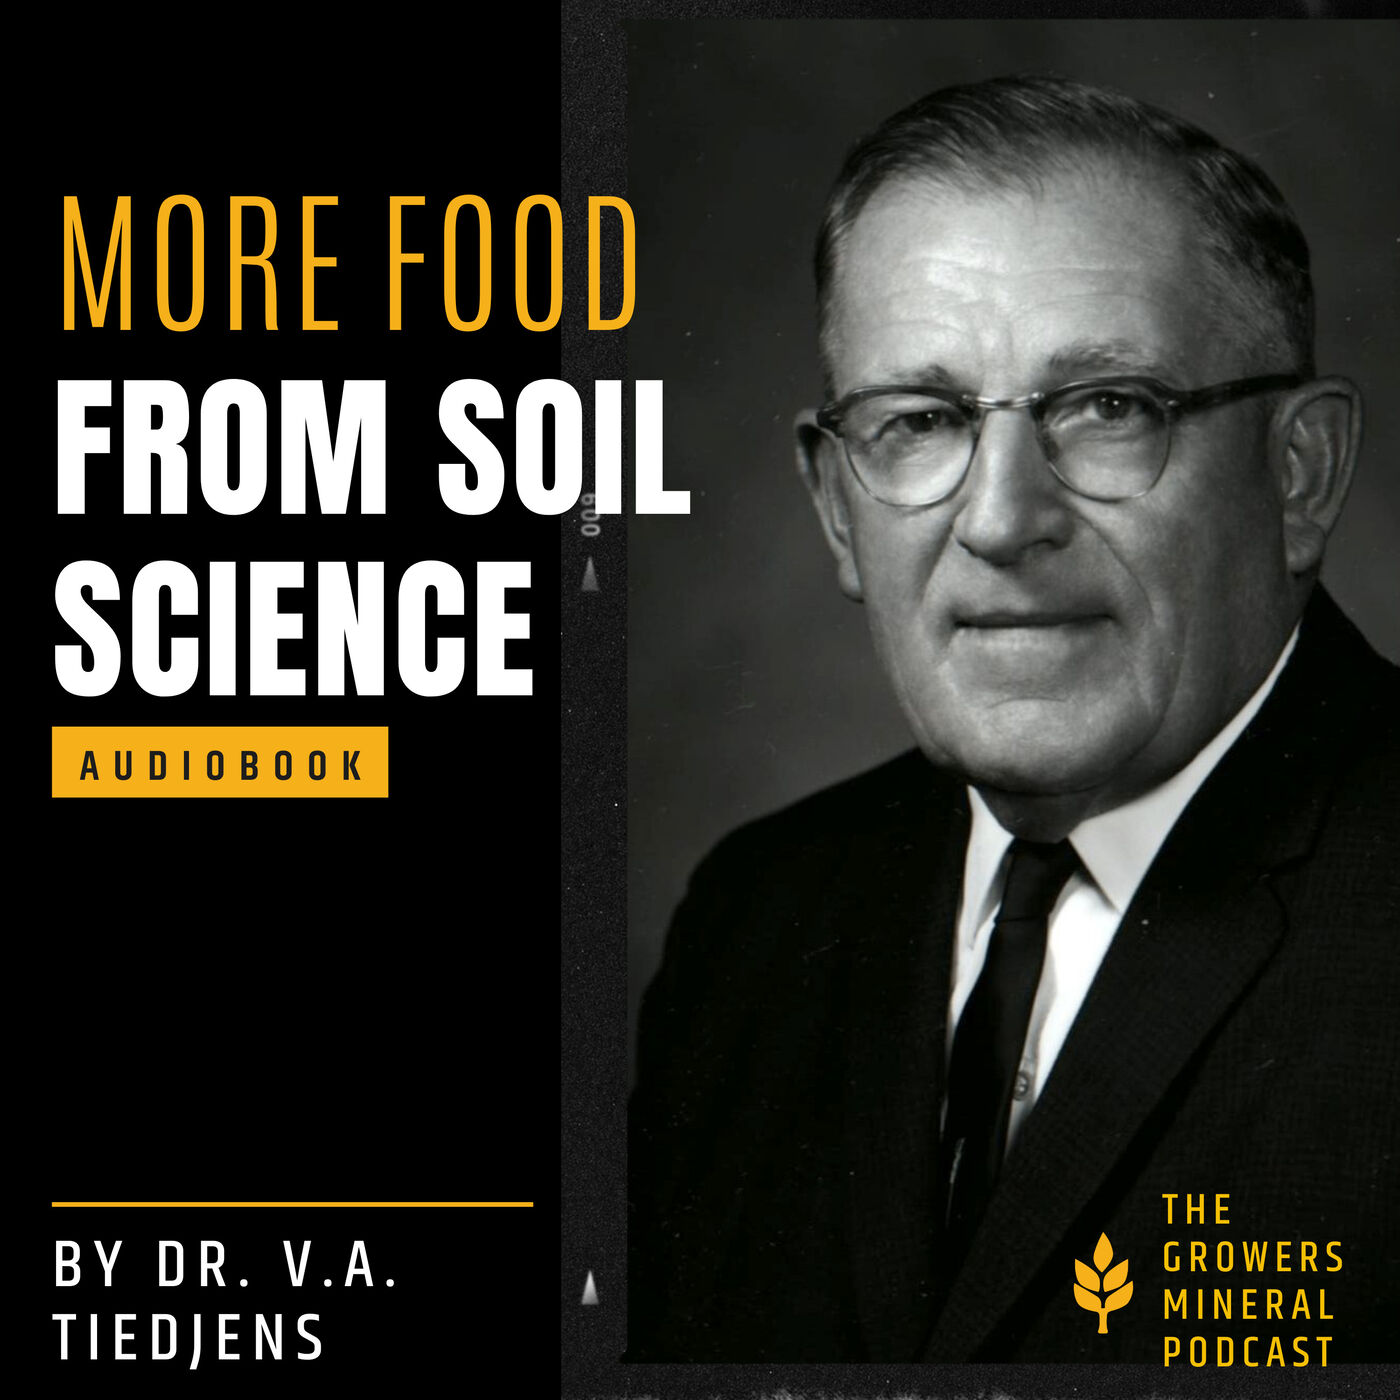 More Food from Soil Science Audiobook Ch. 13 - Soil and Plant Tests May Be Useful in Increasing Yields